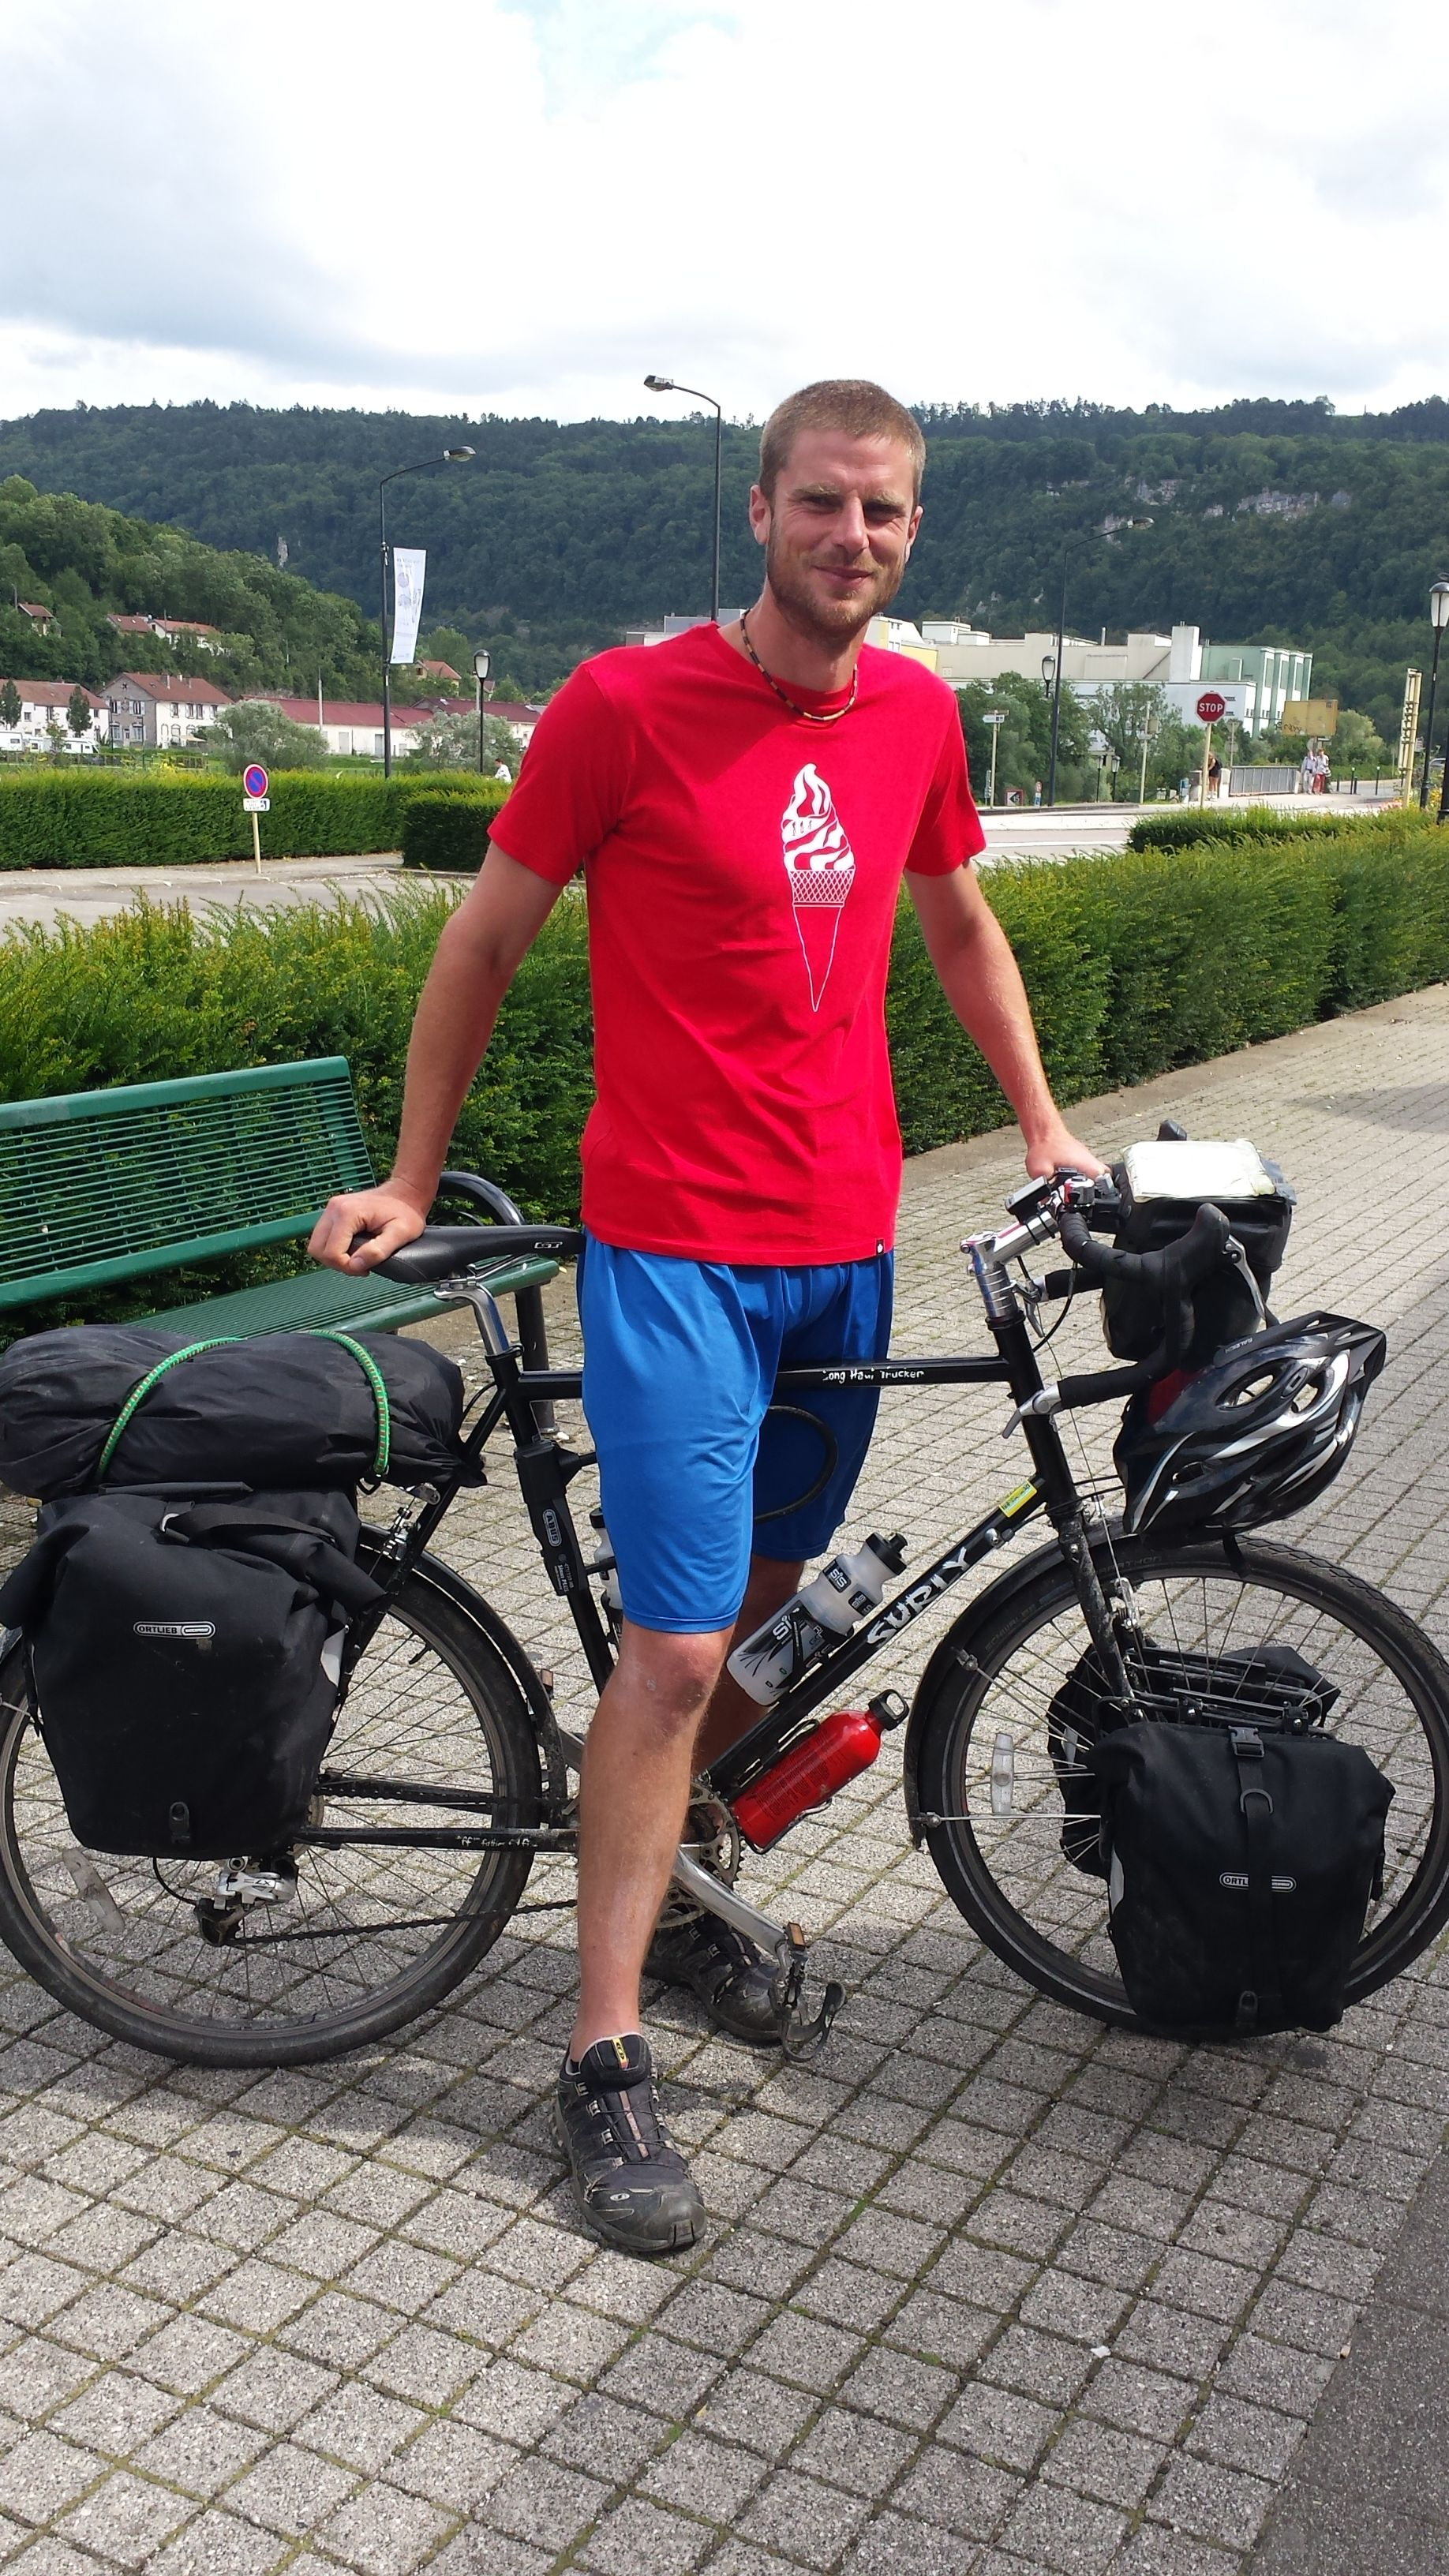 In desperate need of a clean t-shirt, Glower caught up with Simon Weeks in Besançon, France. 900 km to go on his ride from Italy to England. Keep pedalling, you! #cycling #touring #glowermoments #thinkoutside #graphictees #casualclothing #handprinted #screenprinting